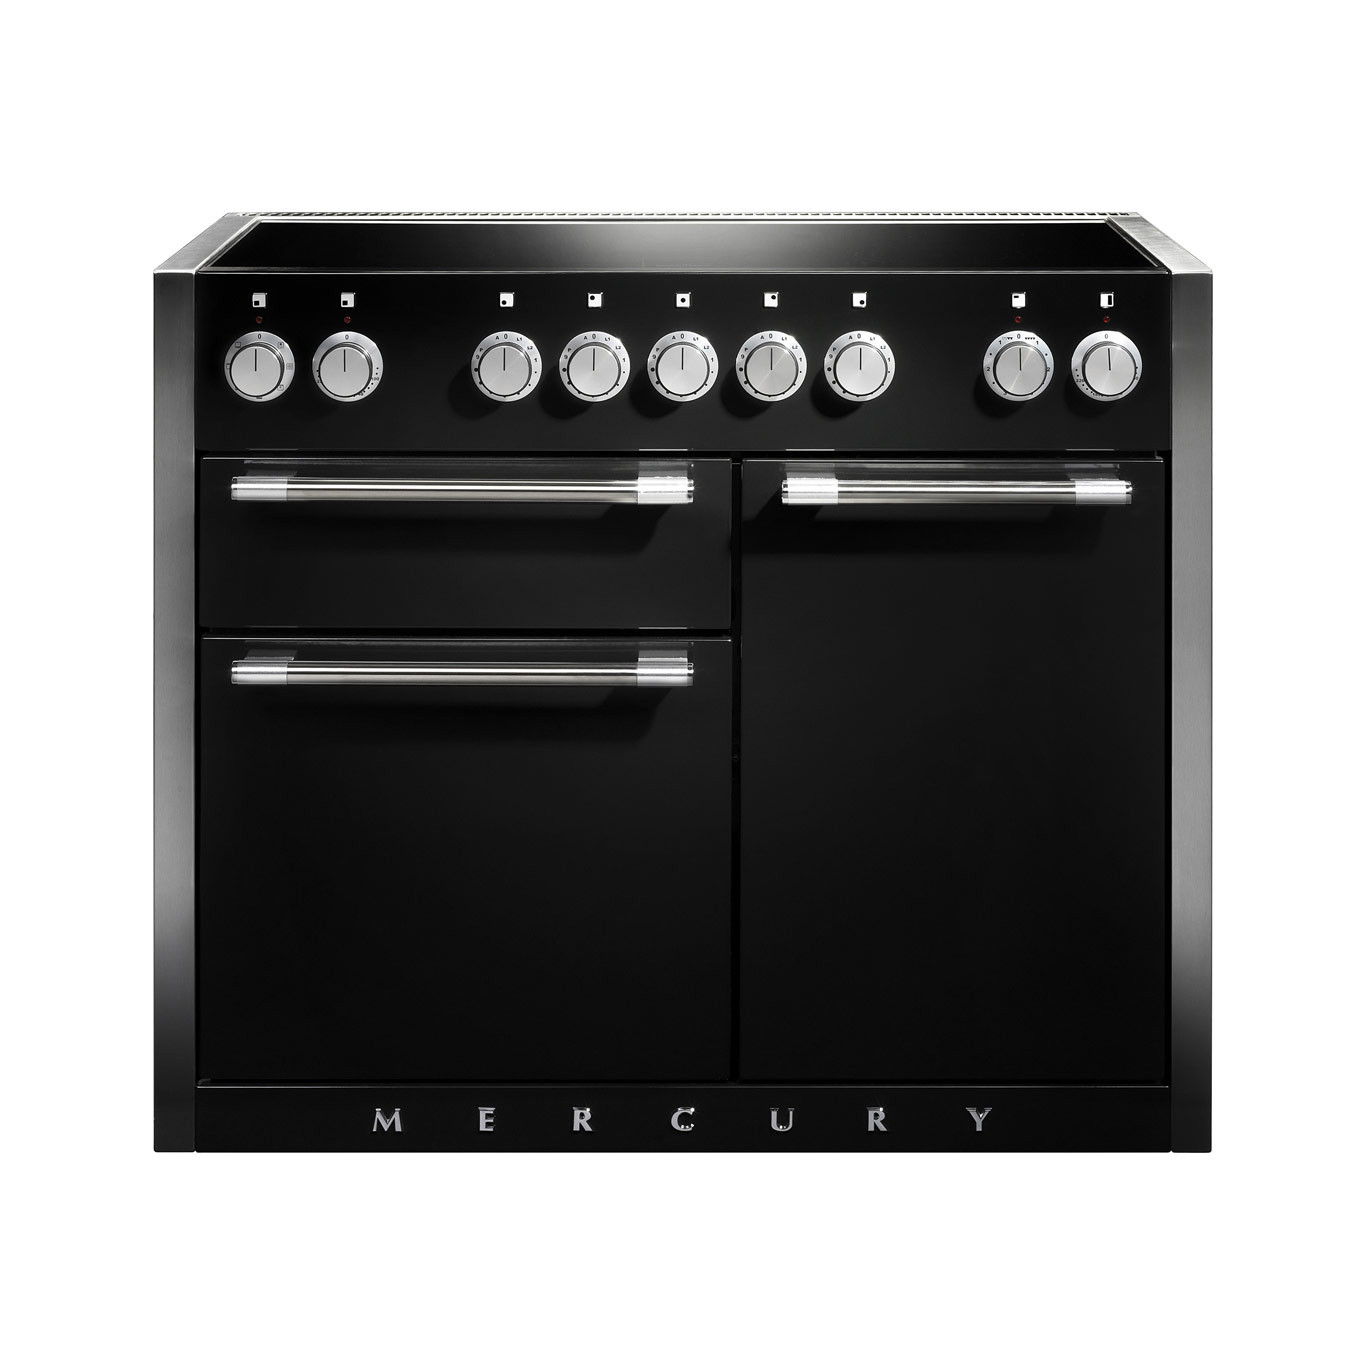 Mercury MCY1082EI Induction Liquorice Range Cooker